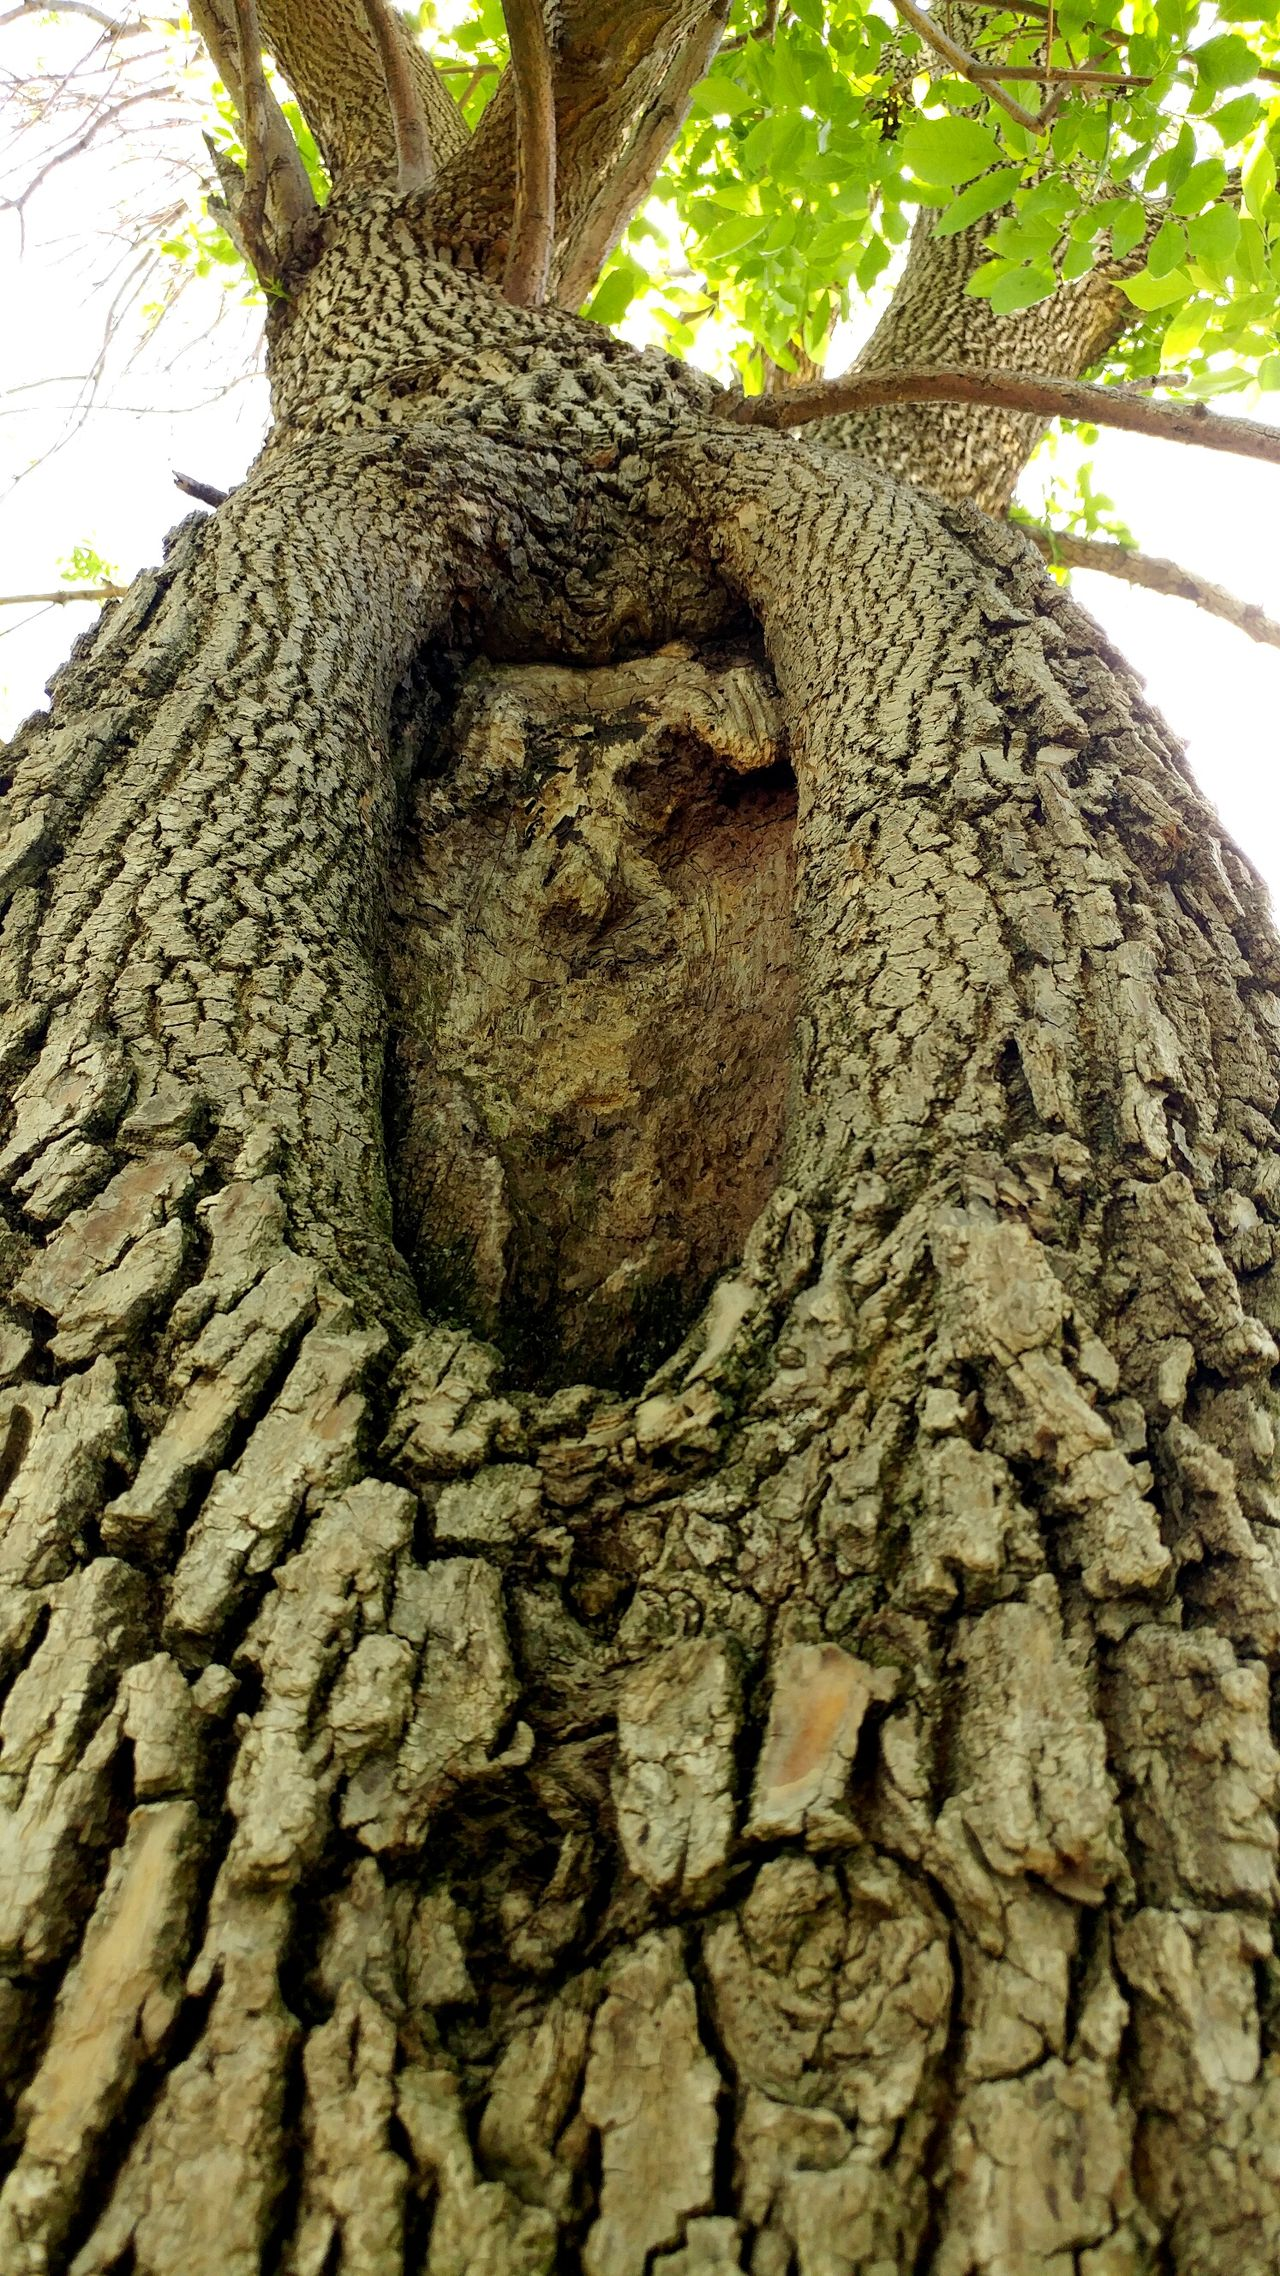 Face in a tree🌳 Tree And Sky Low Angle View Best Of EyeEm Soaking Up The Sun Eye4photography  Agriculture Close-up Tranquility Hello World Tree No People Day Face In Tree Tree Art Tree Bark Treetastic